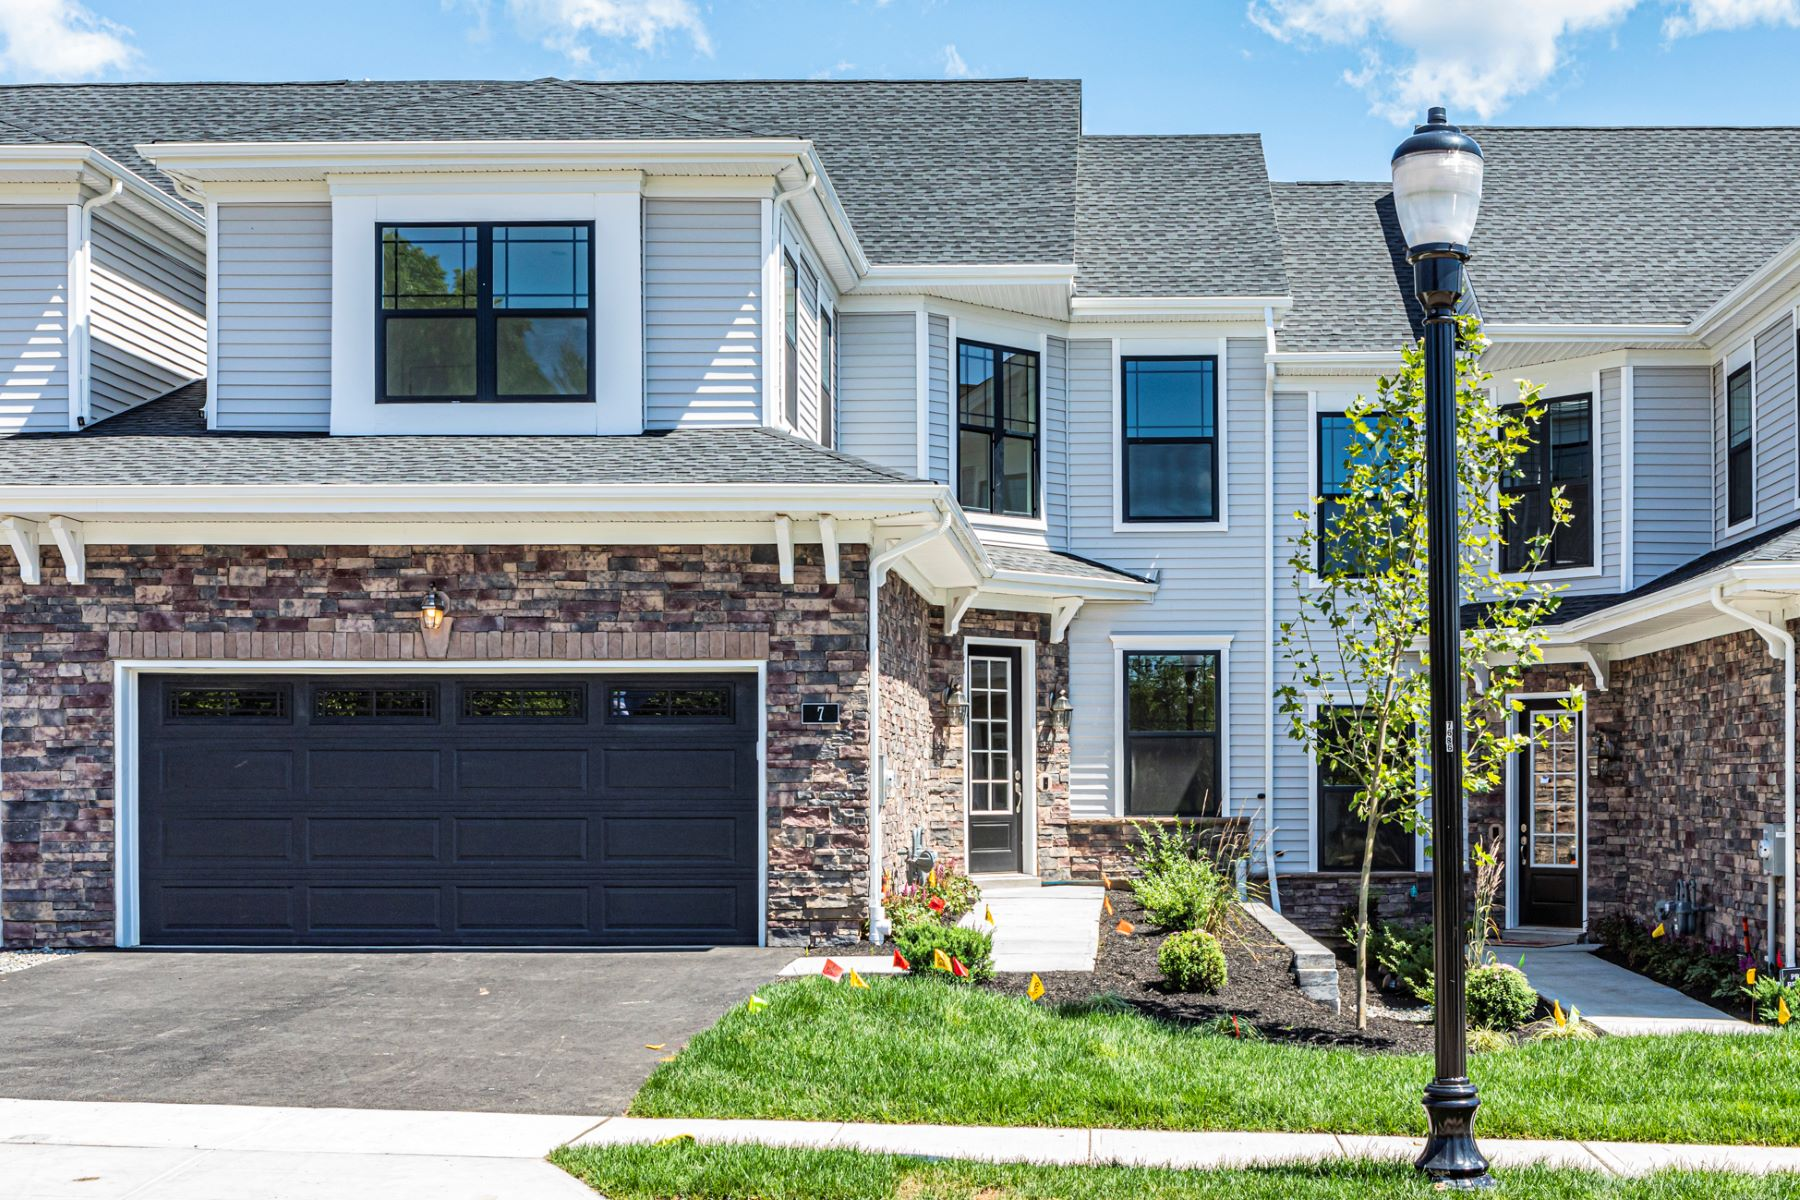 townhouses para Venda às Ease Into Luxury at Cobblestone Creek 15 Dogleg Lane, Lawrenceville, Nova Jersey 08648 Estados Unidos